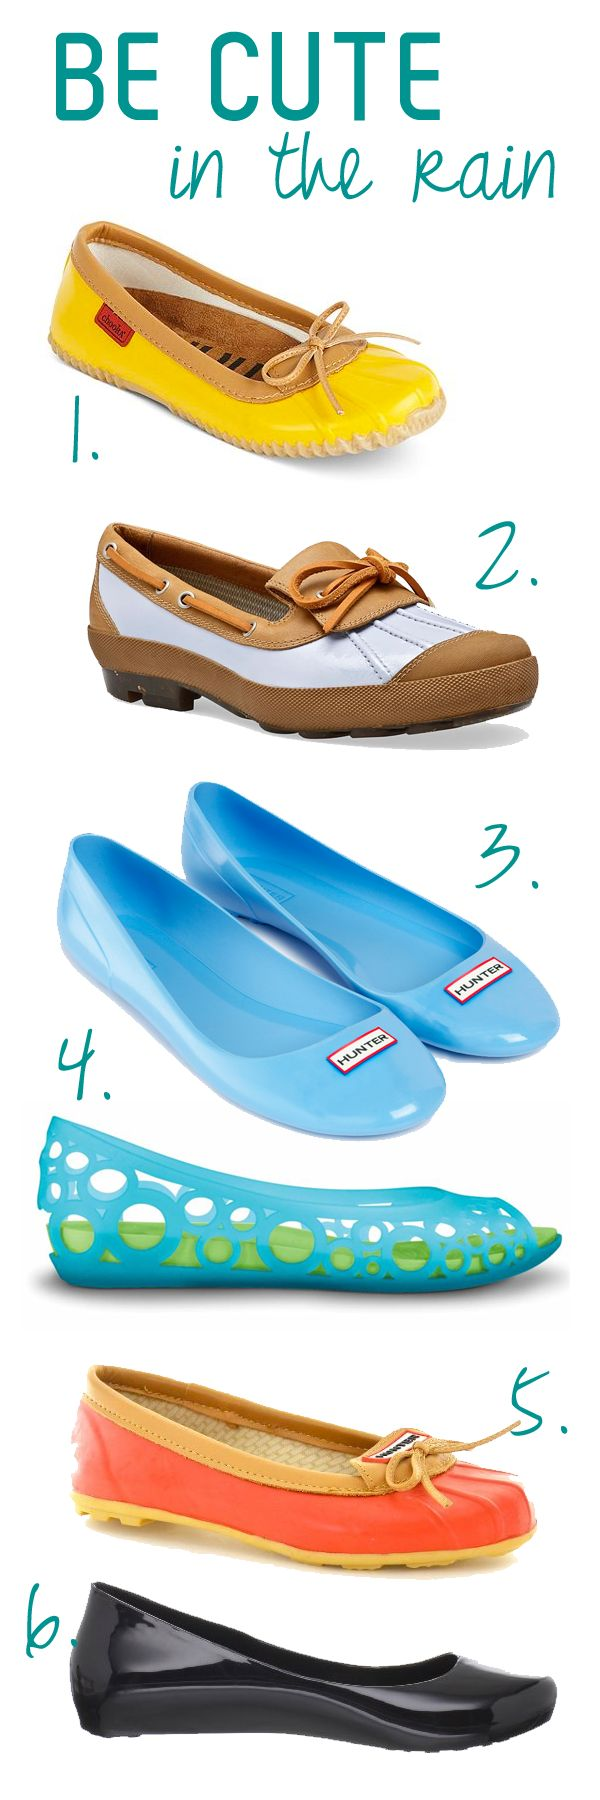 cute rain shoes at all price points